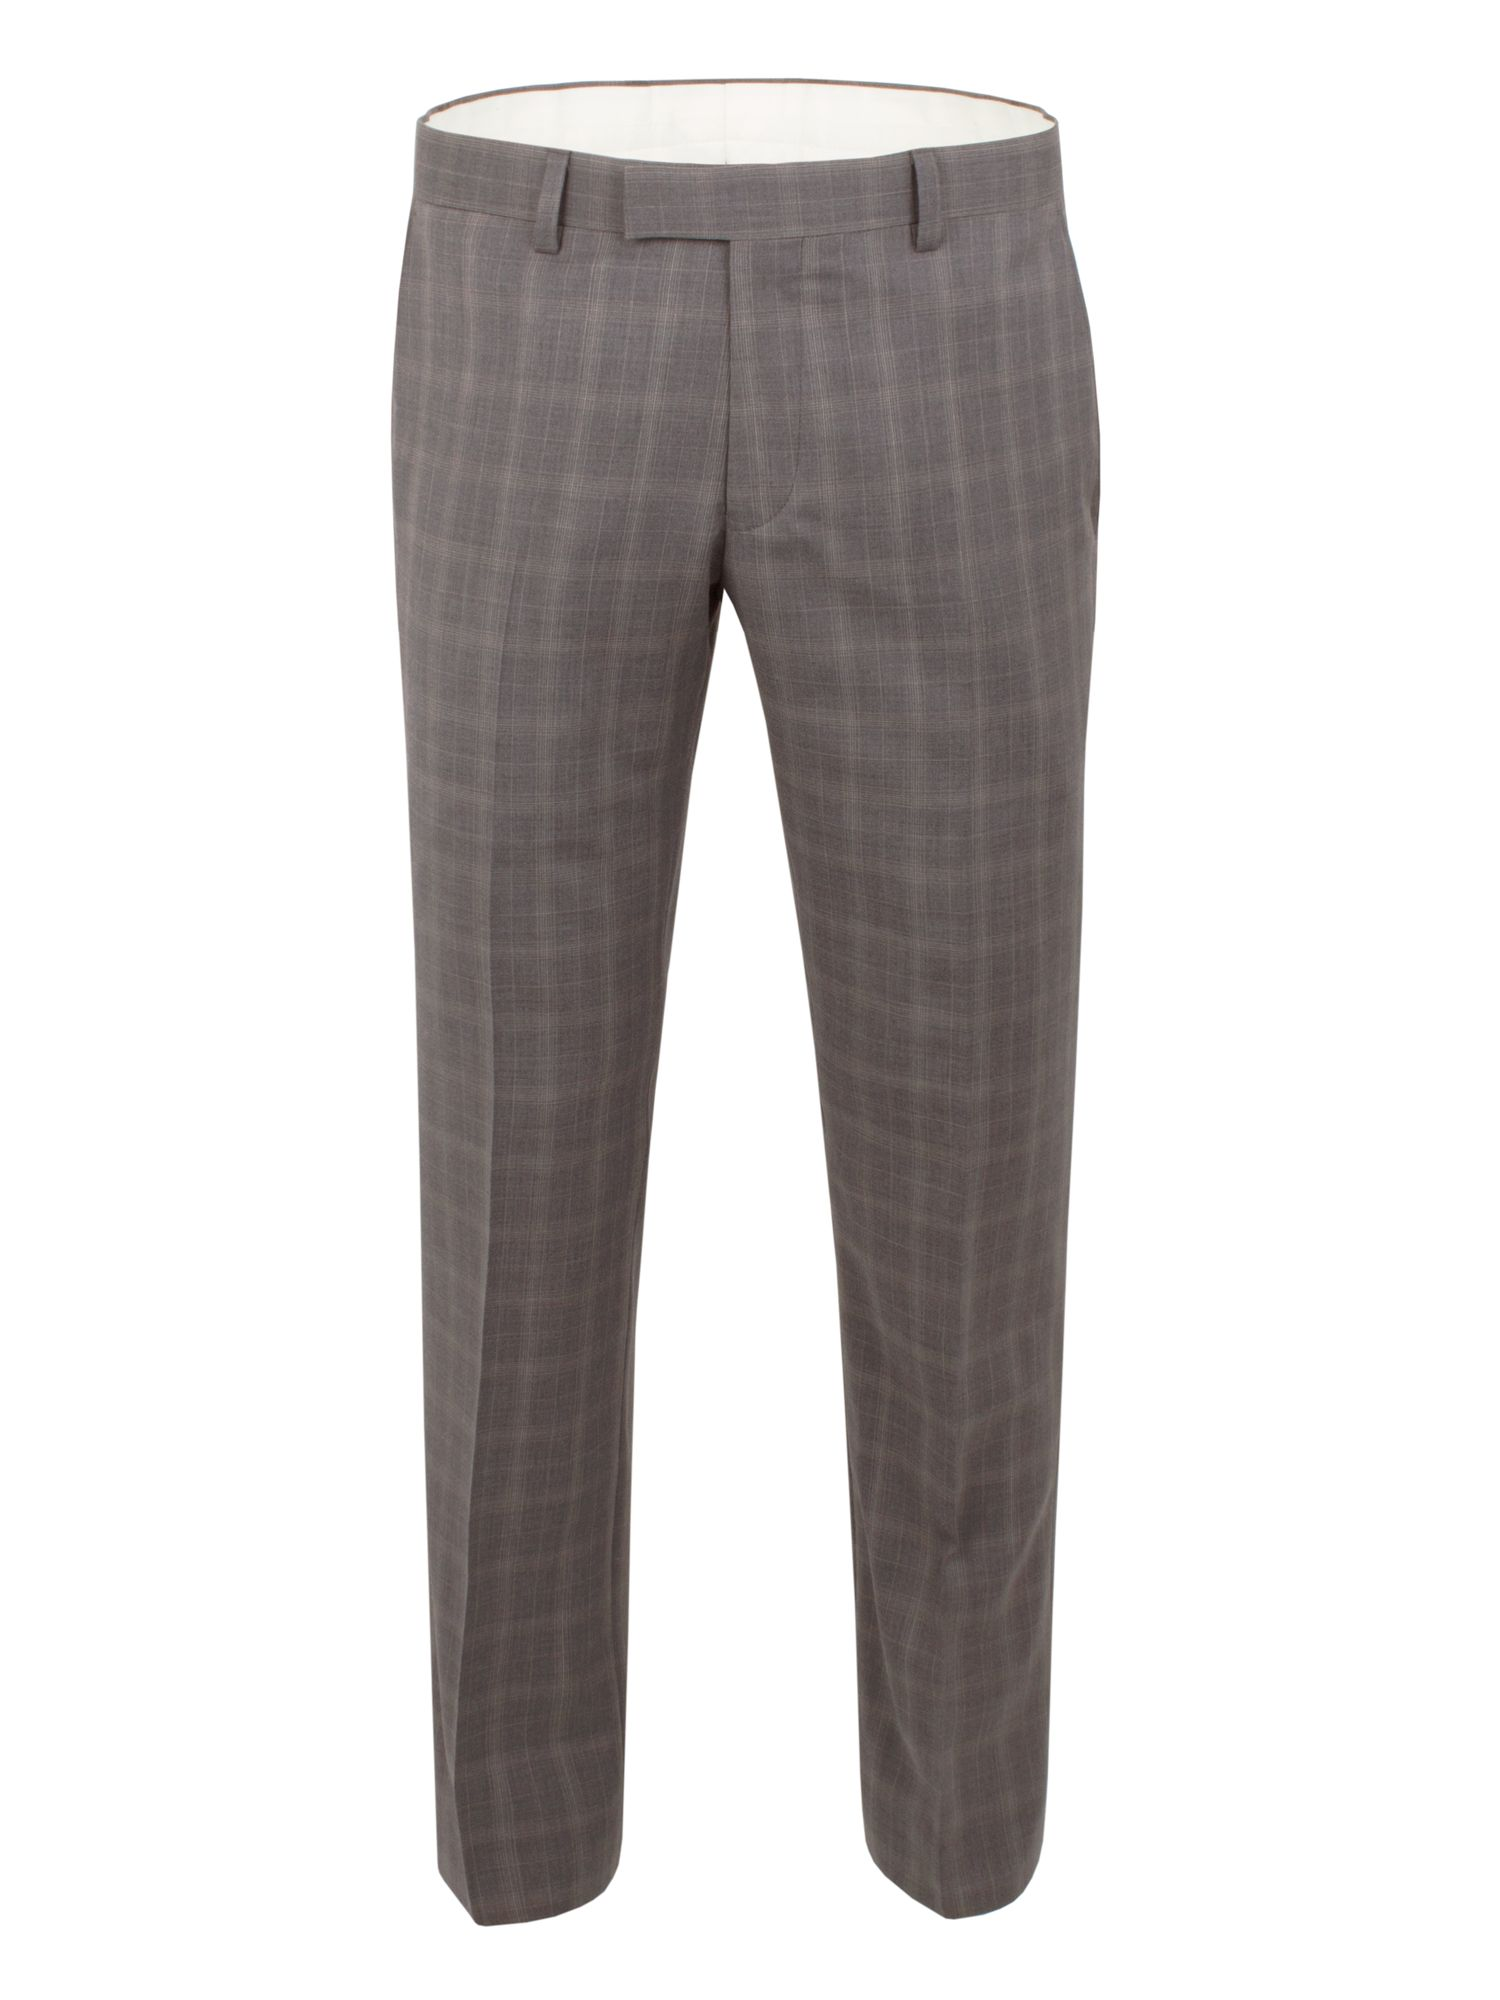 Racing Green Men's Racing Green Check Tailored Fit Suit Trousers, Grey